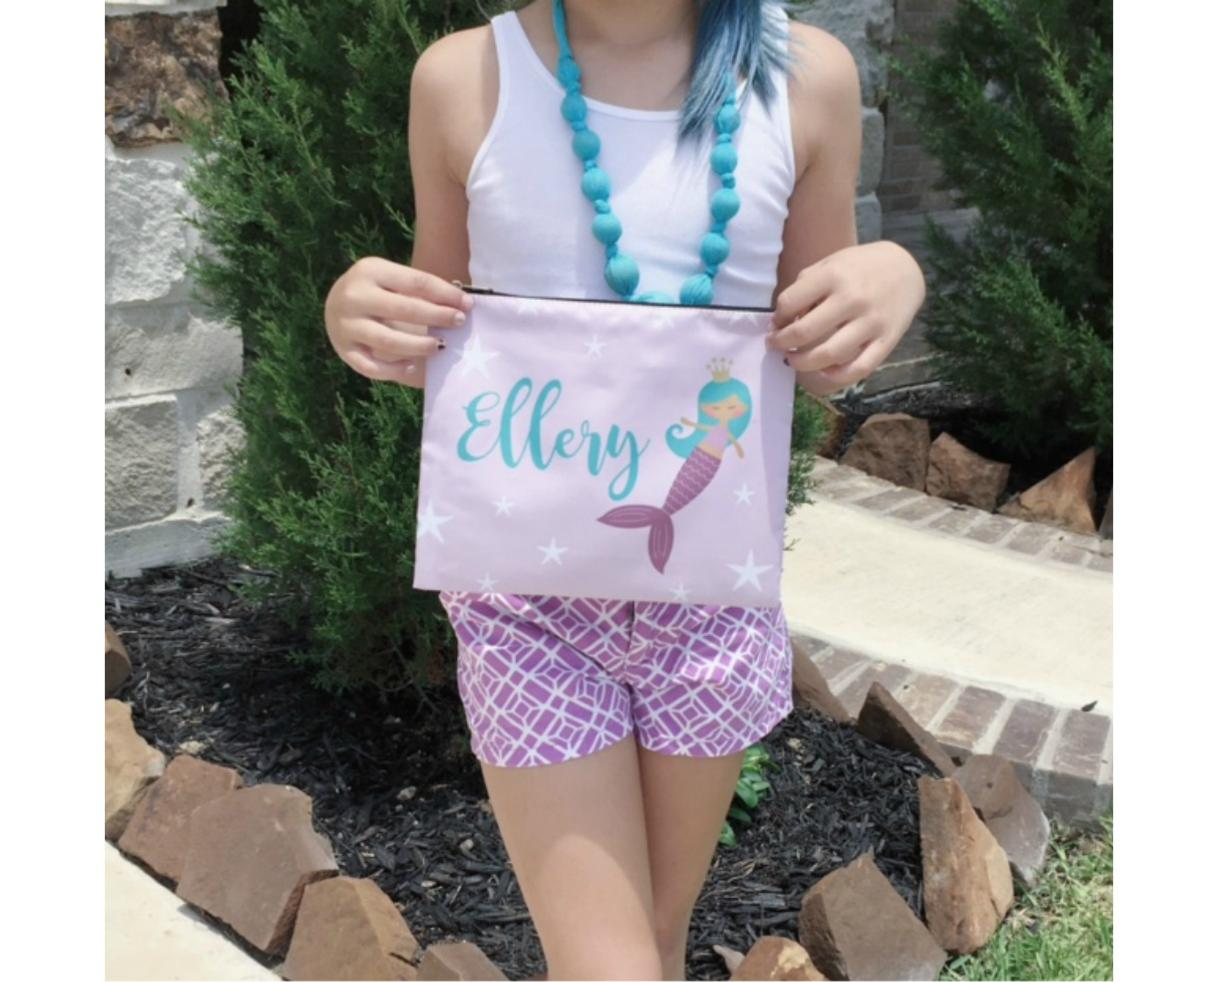 $14 for Personalized Pencil or Cosmetic Bag OR $55 for 5 - Includes Shipping! Perfect for Back to School, Vacations, Gifts & More! (Up to 53% Off)